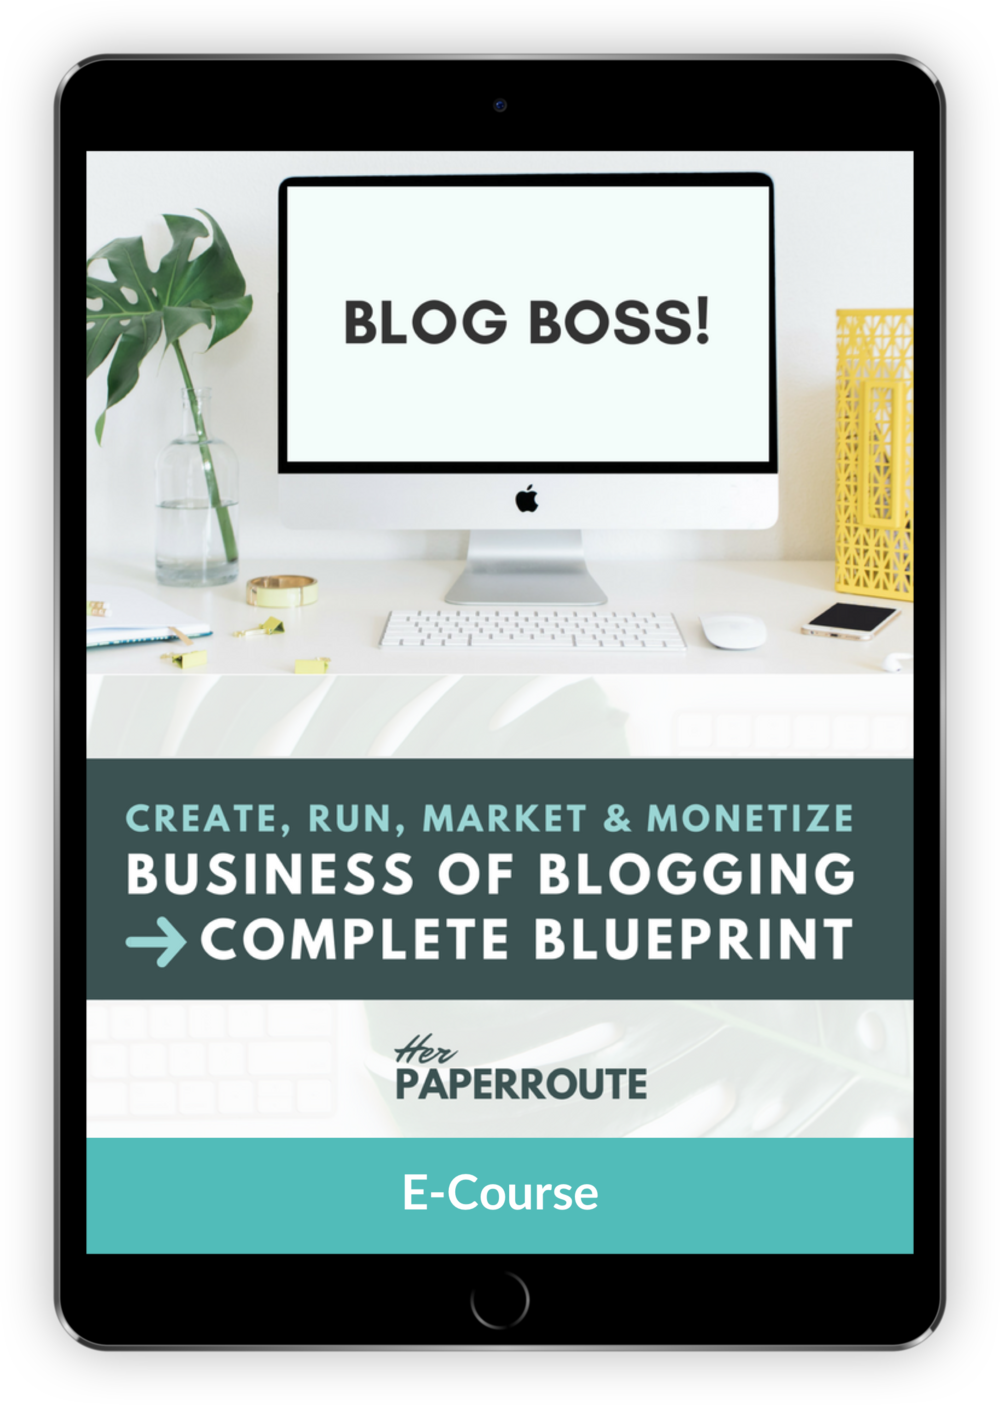 BlogBoss Mockup - Copy.png